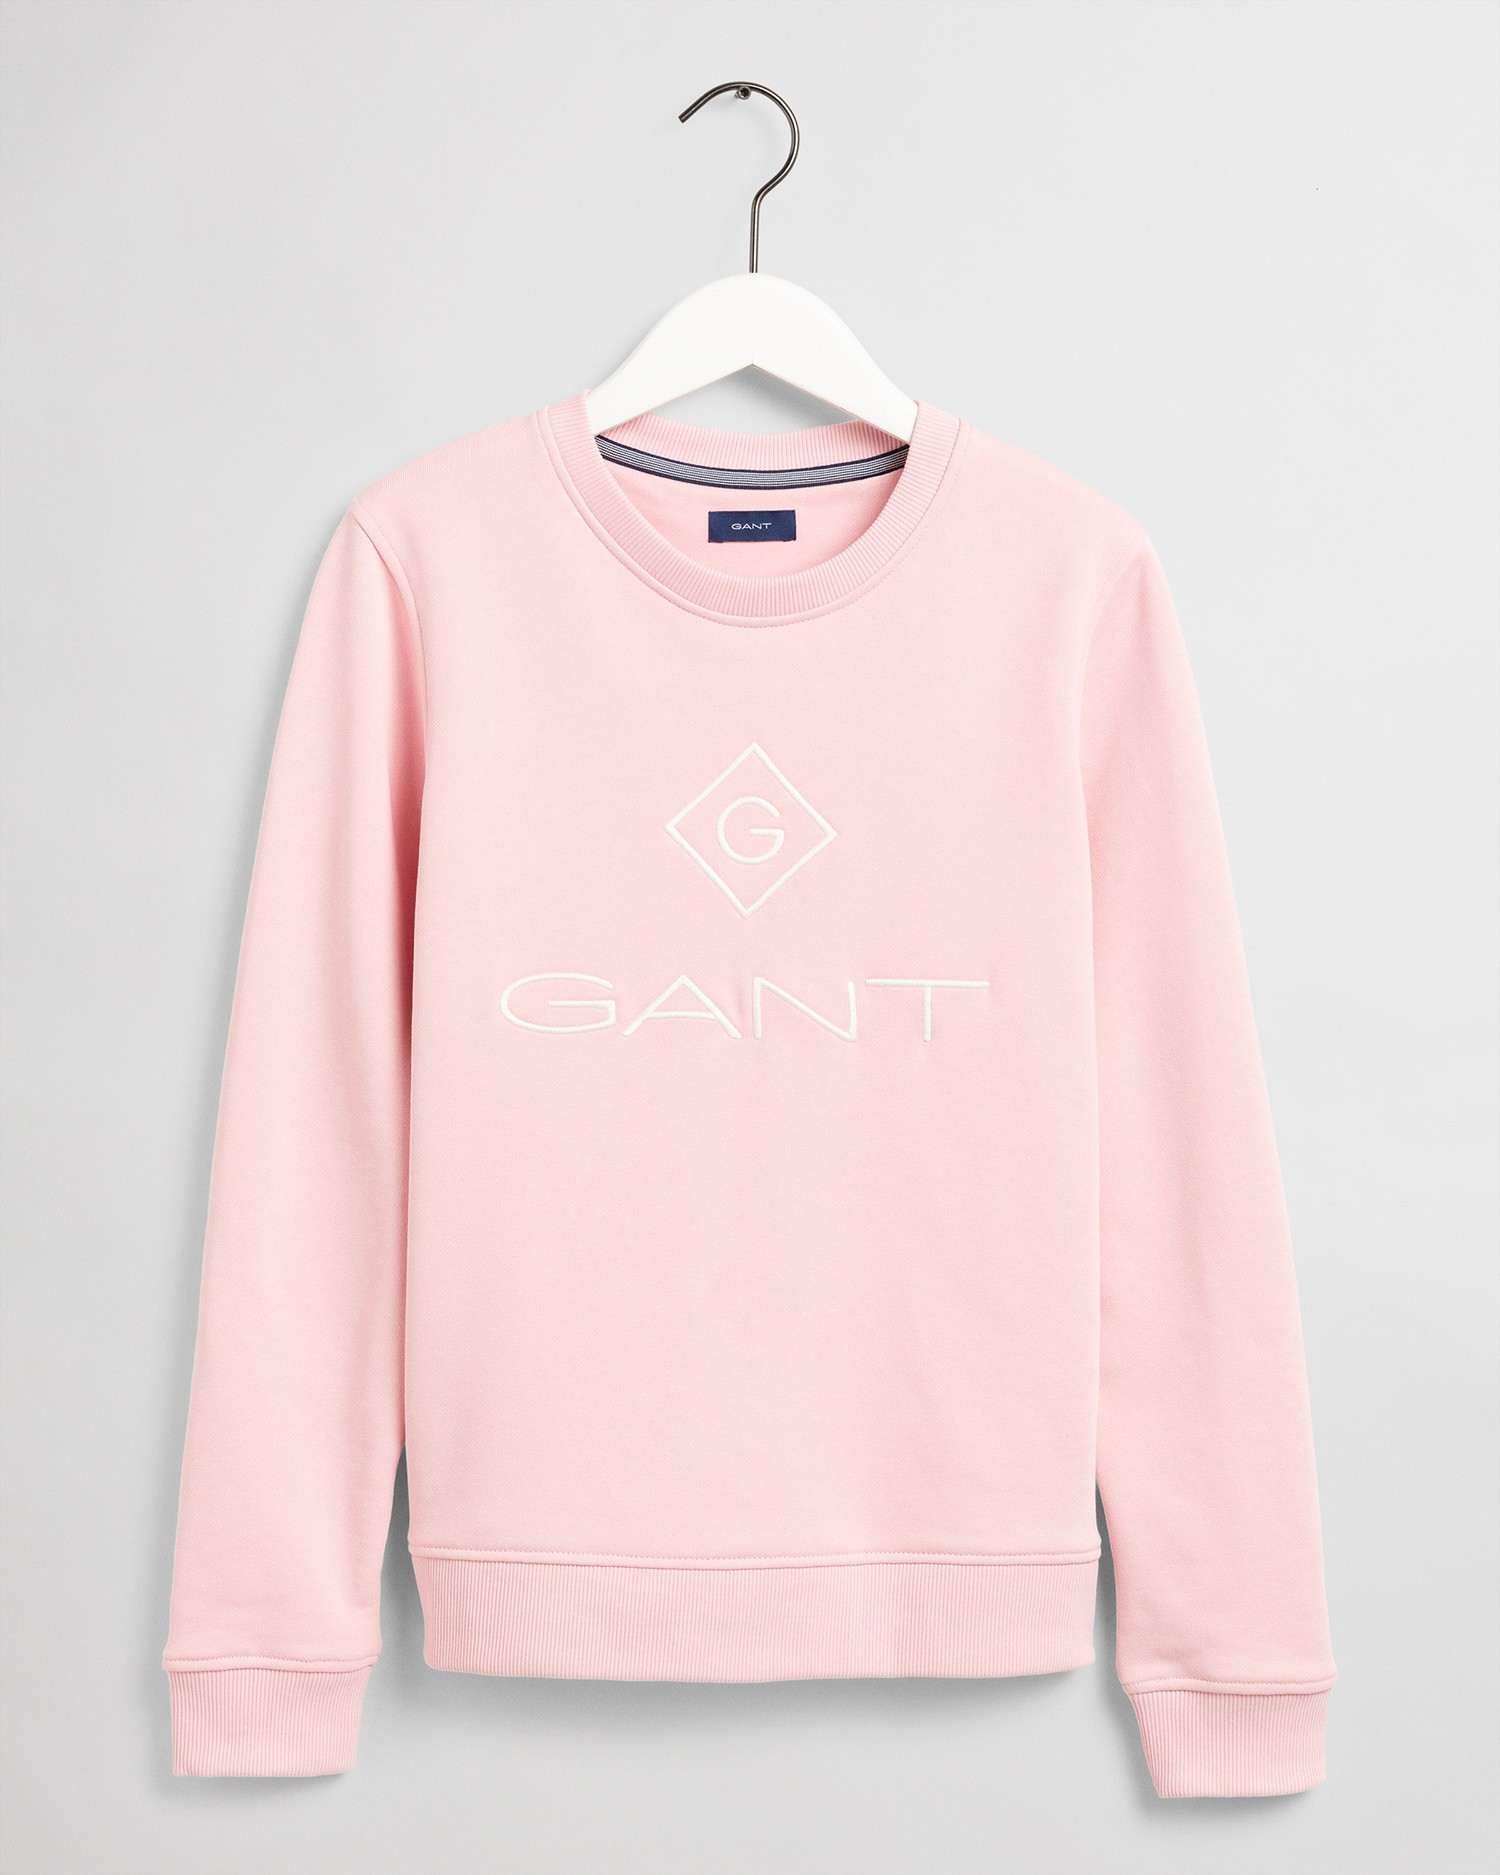 GANT Women's Lock Up C Neck Sweatshirt - 4204680